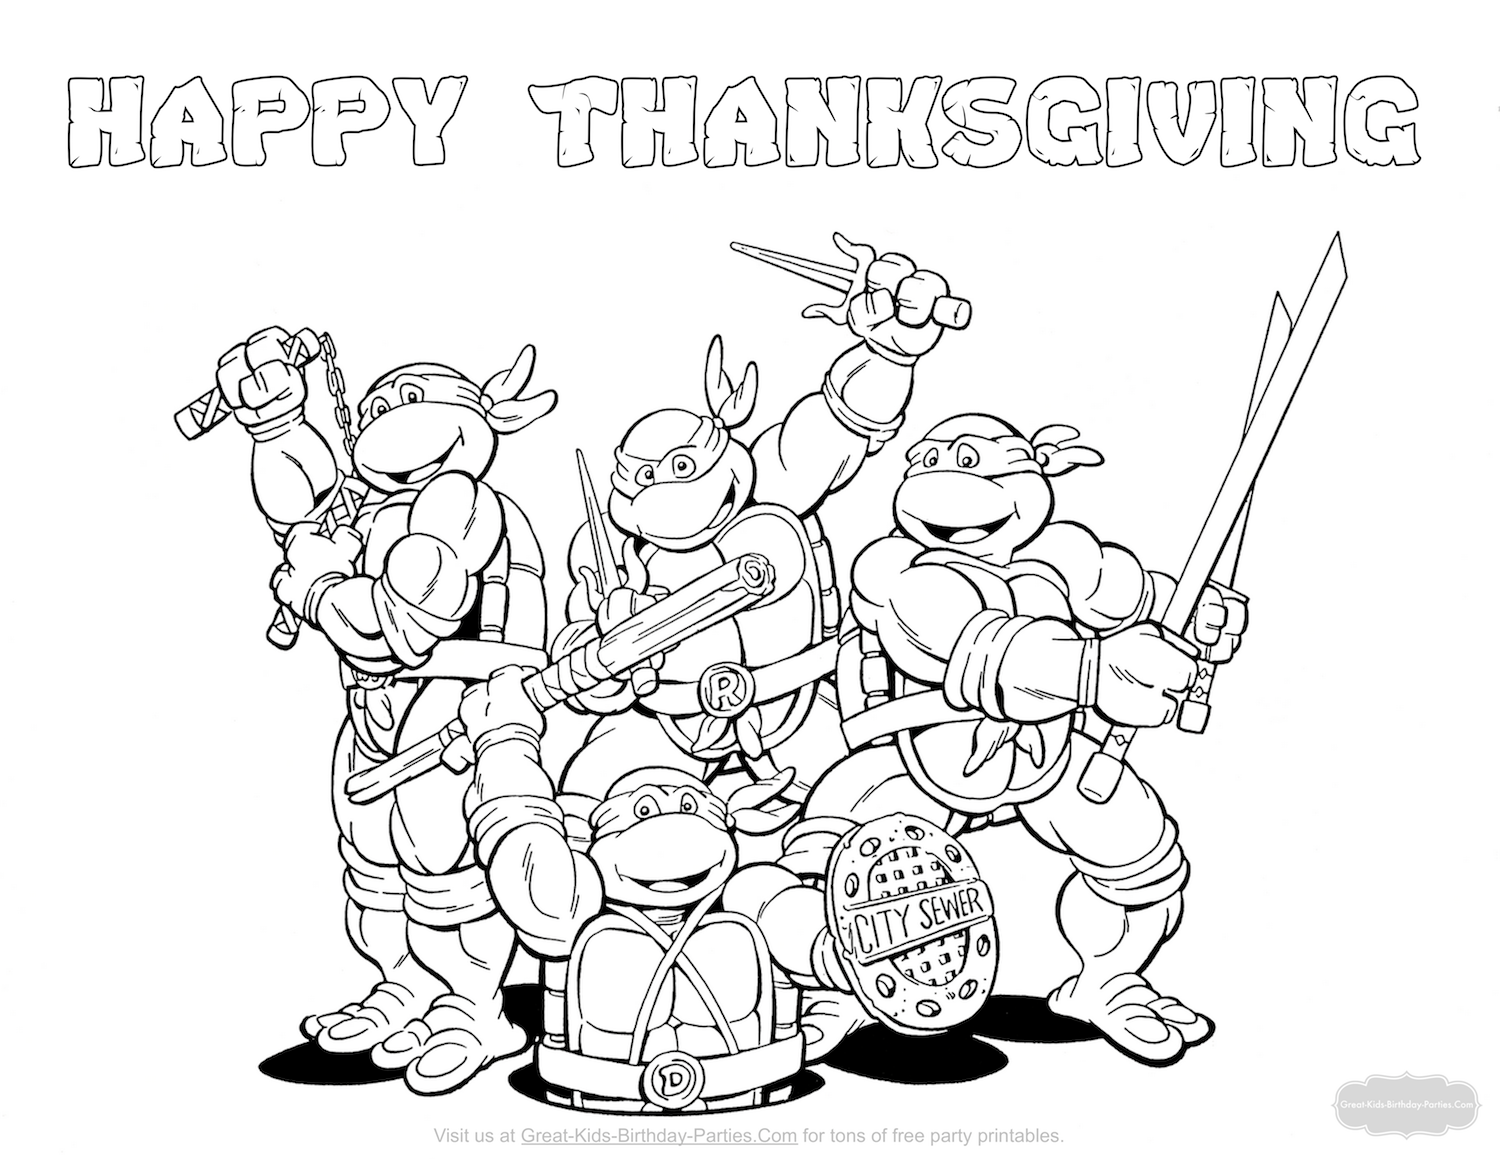 Ninja Turtles Thanksgiving coloring page